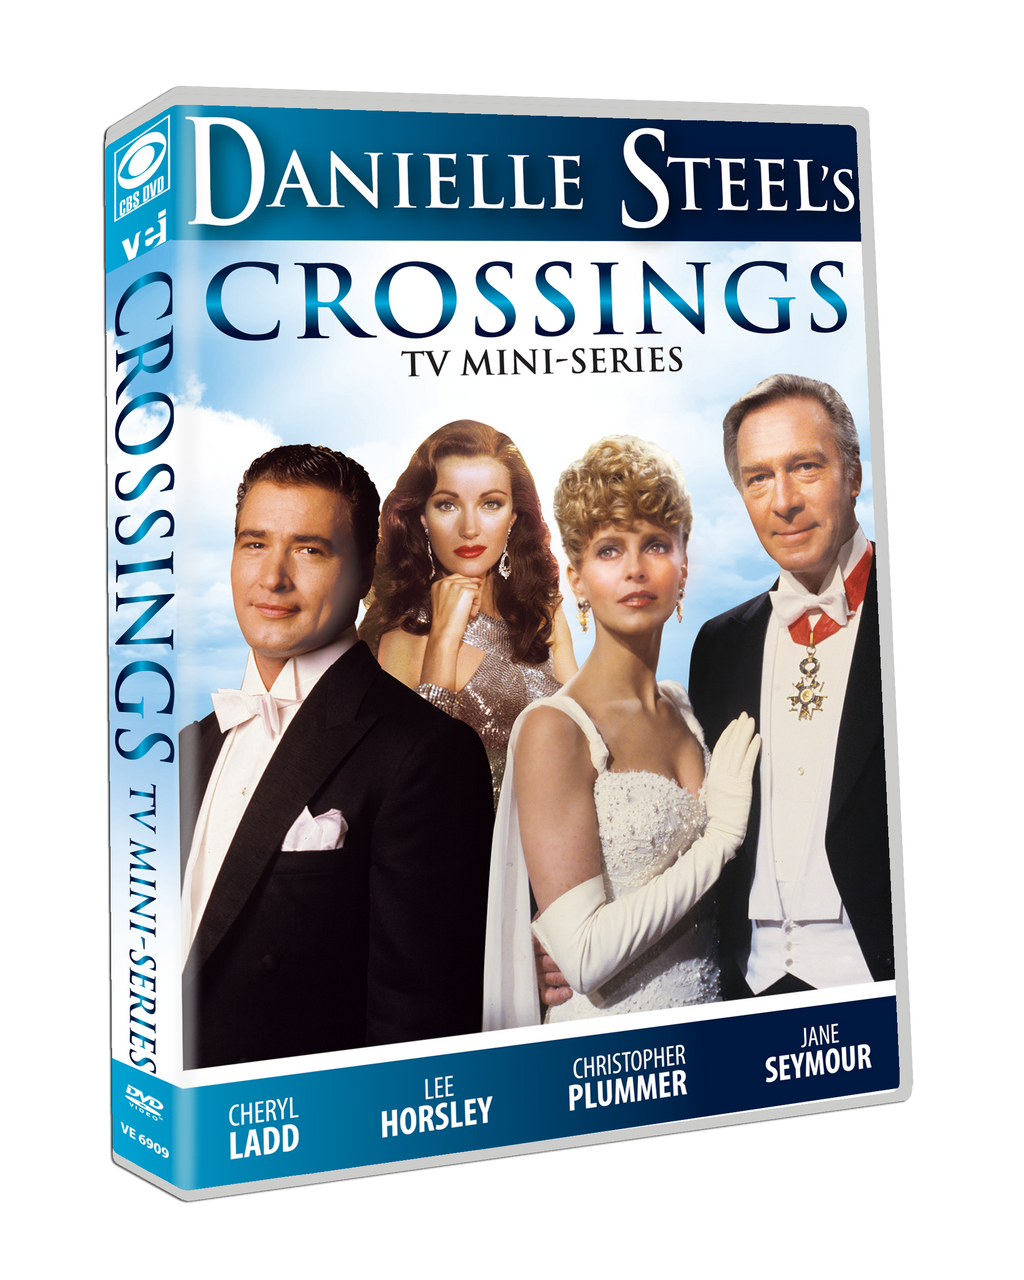 DANIELLE STEEL'S - CROSSING'S TV MINI-SERIES #6909